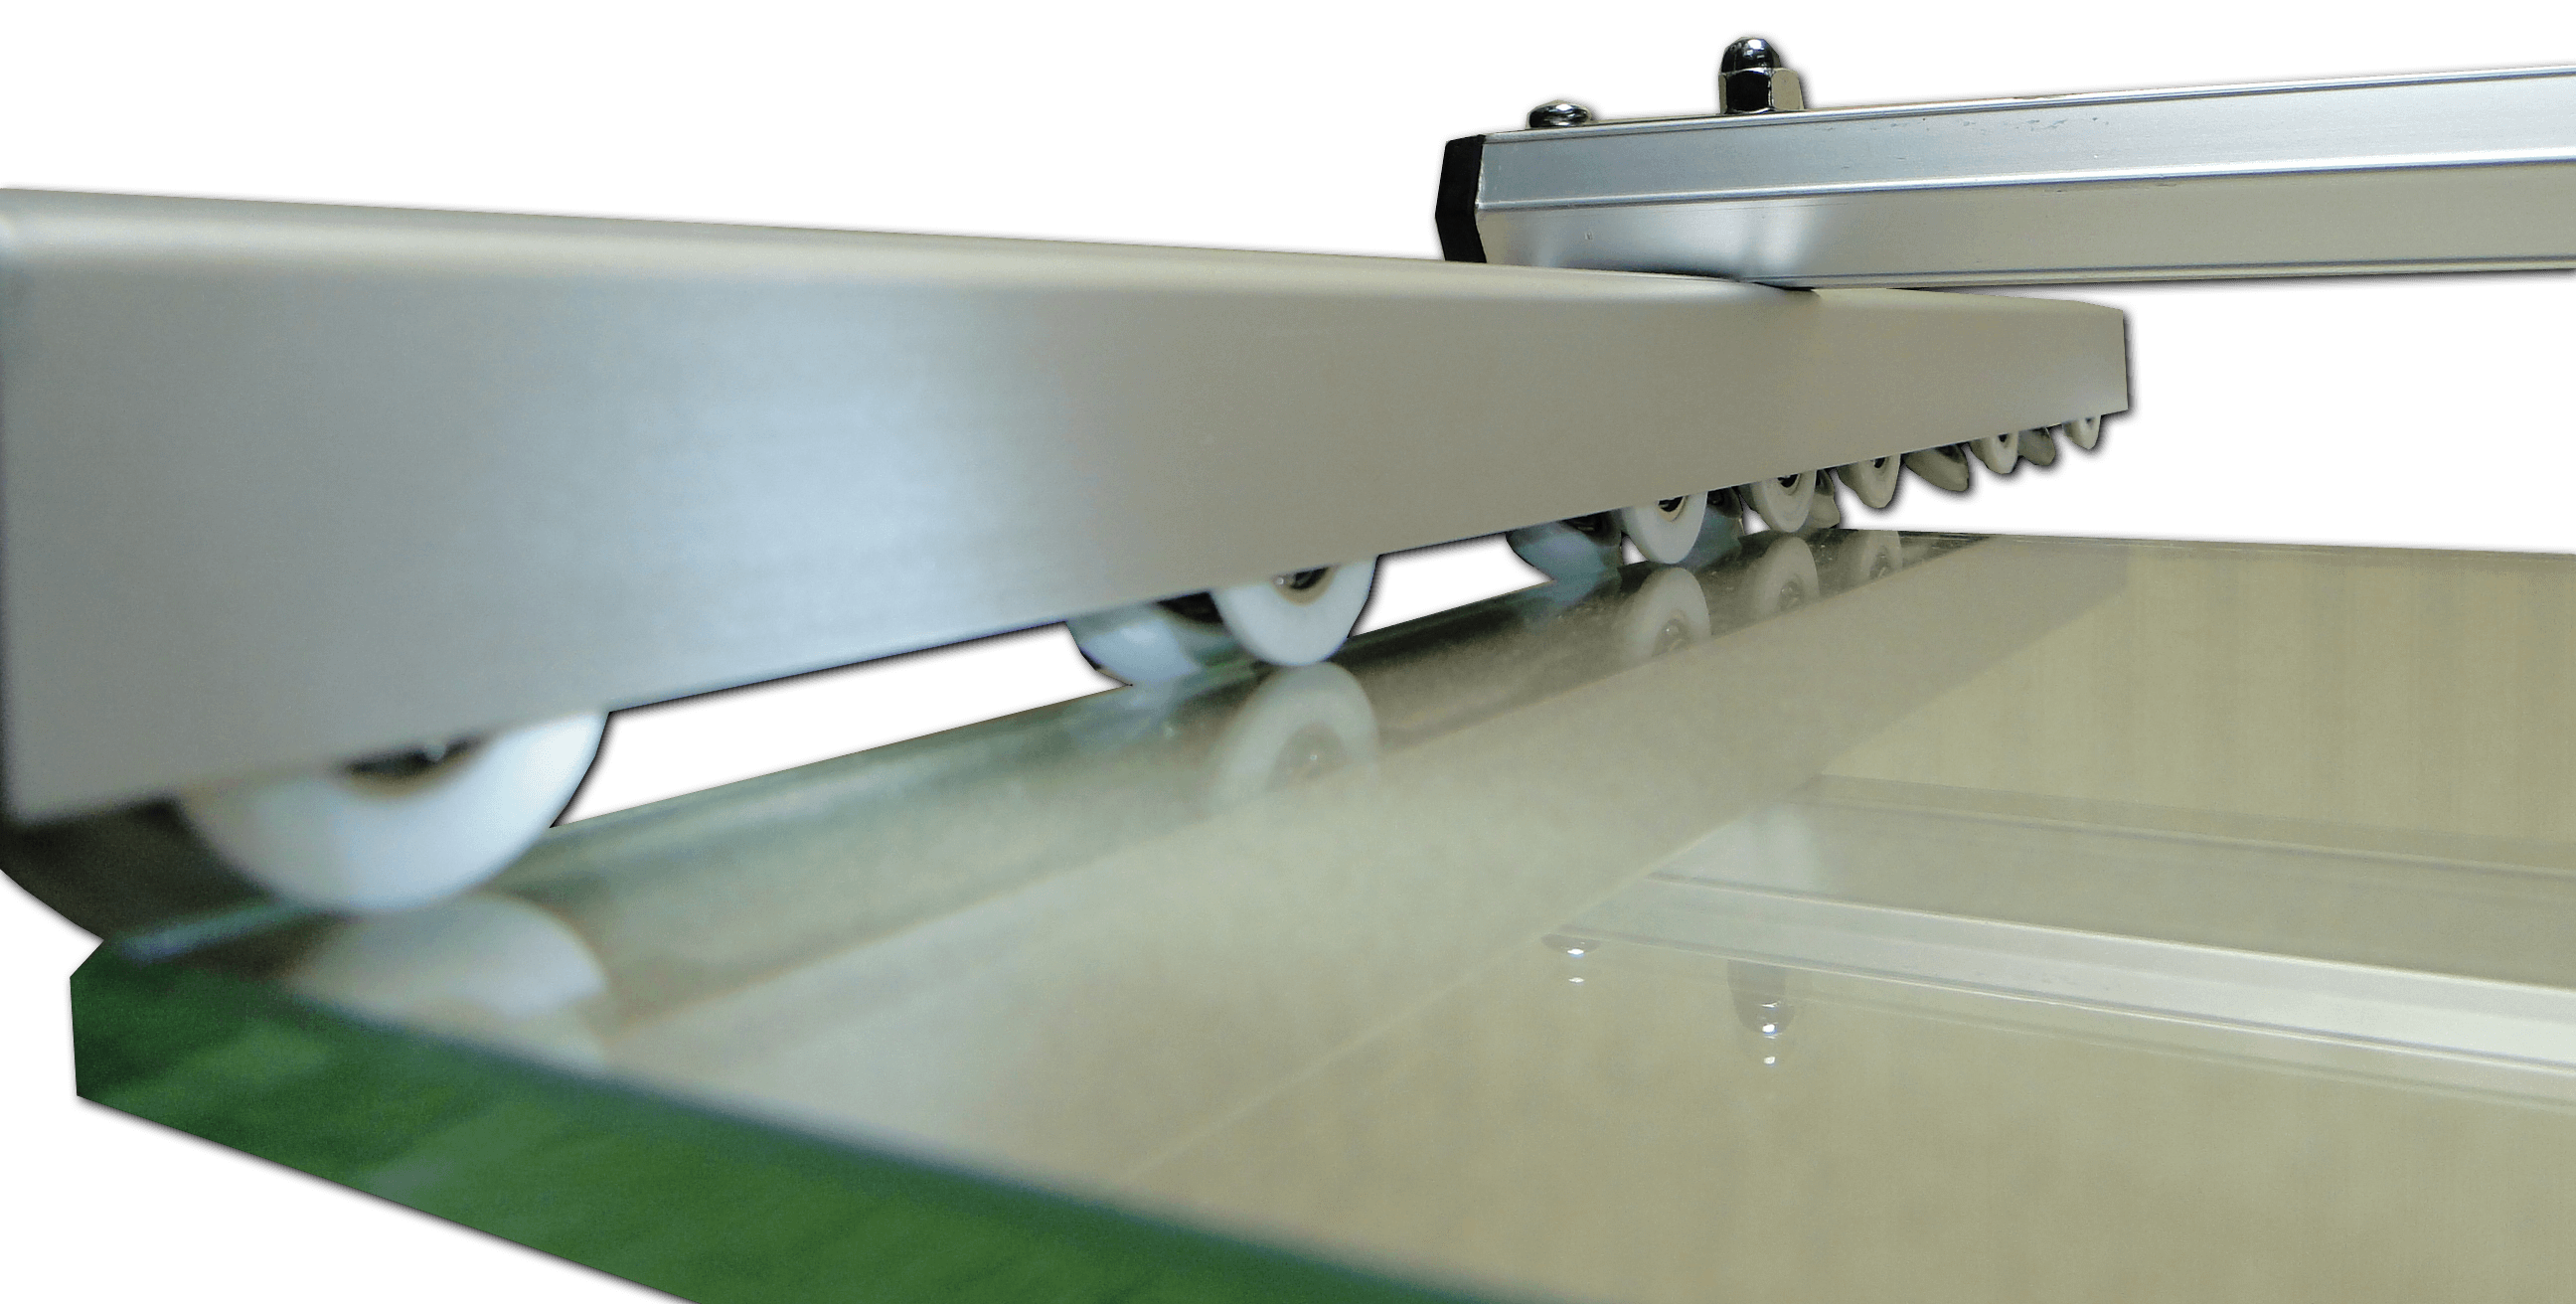 Guide Wheels Run Smoothly Along Glass Edge During Cutting